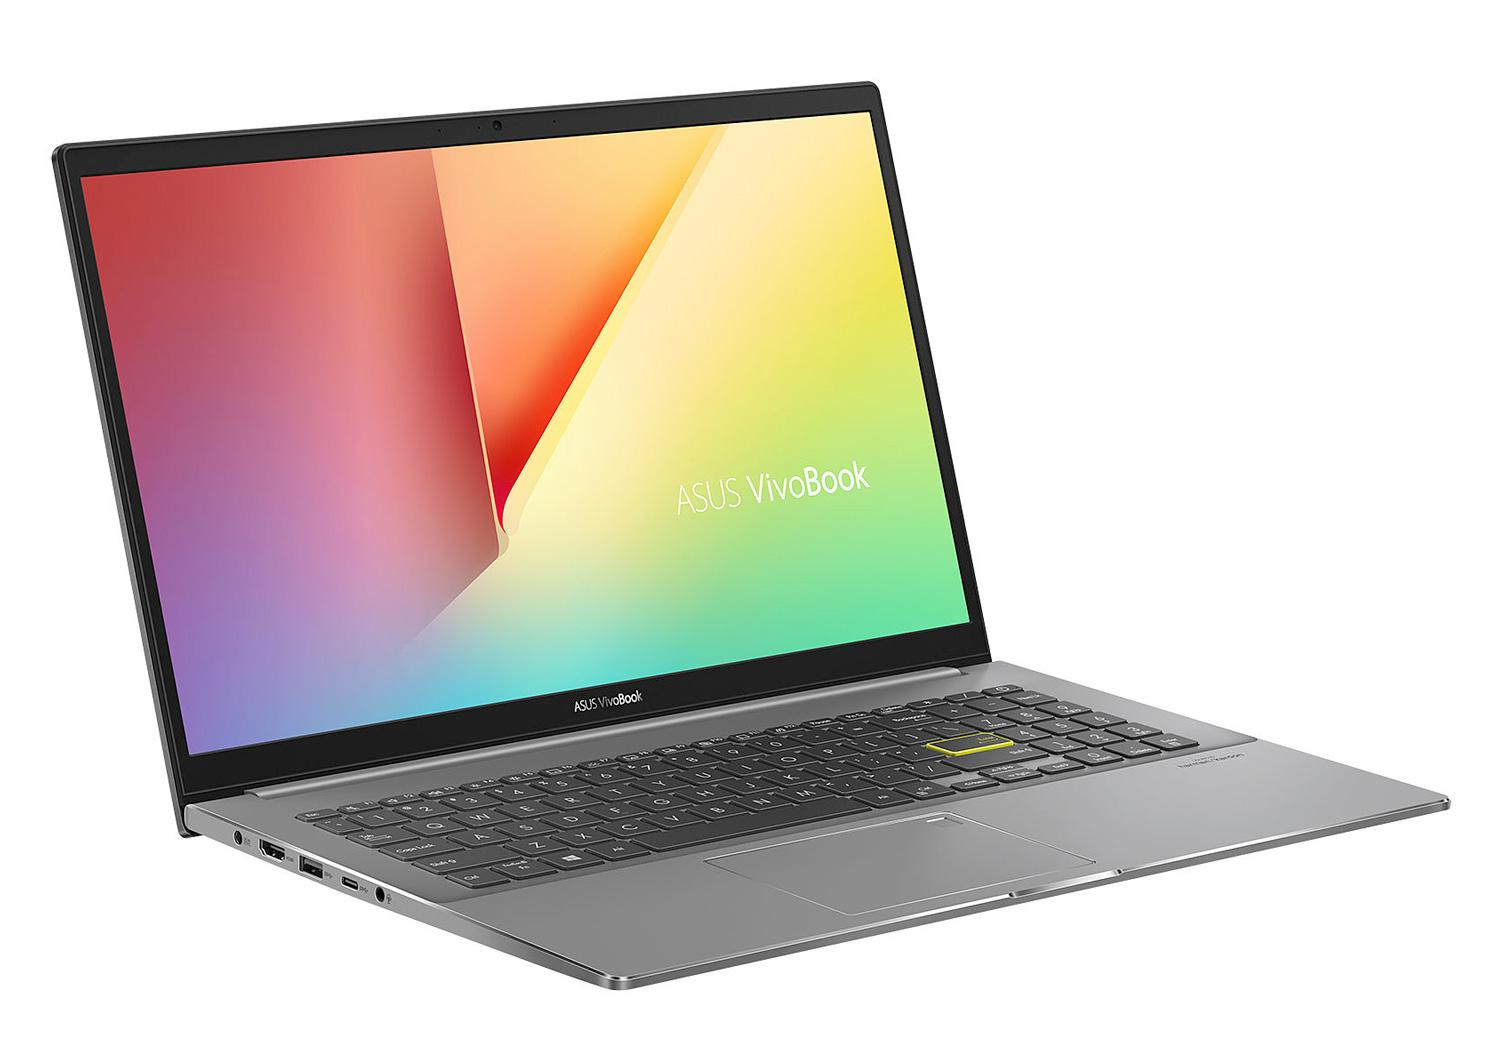 Ordinateur portable Asus Vivobook S533IA-BQ086T Noir/Gris - Ryzen 7 Octo Core  - photo 1